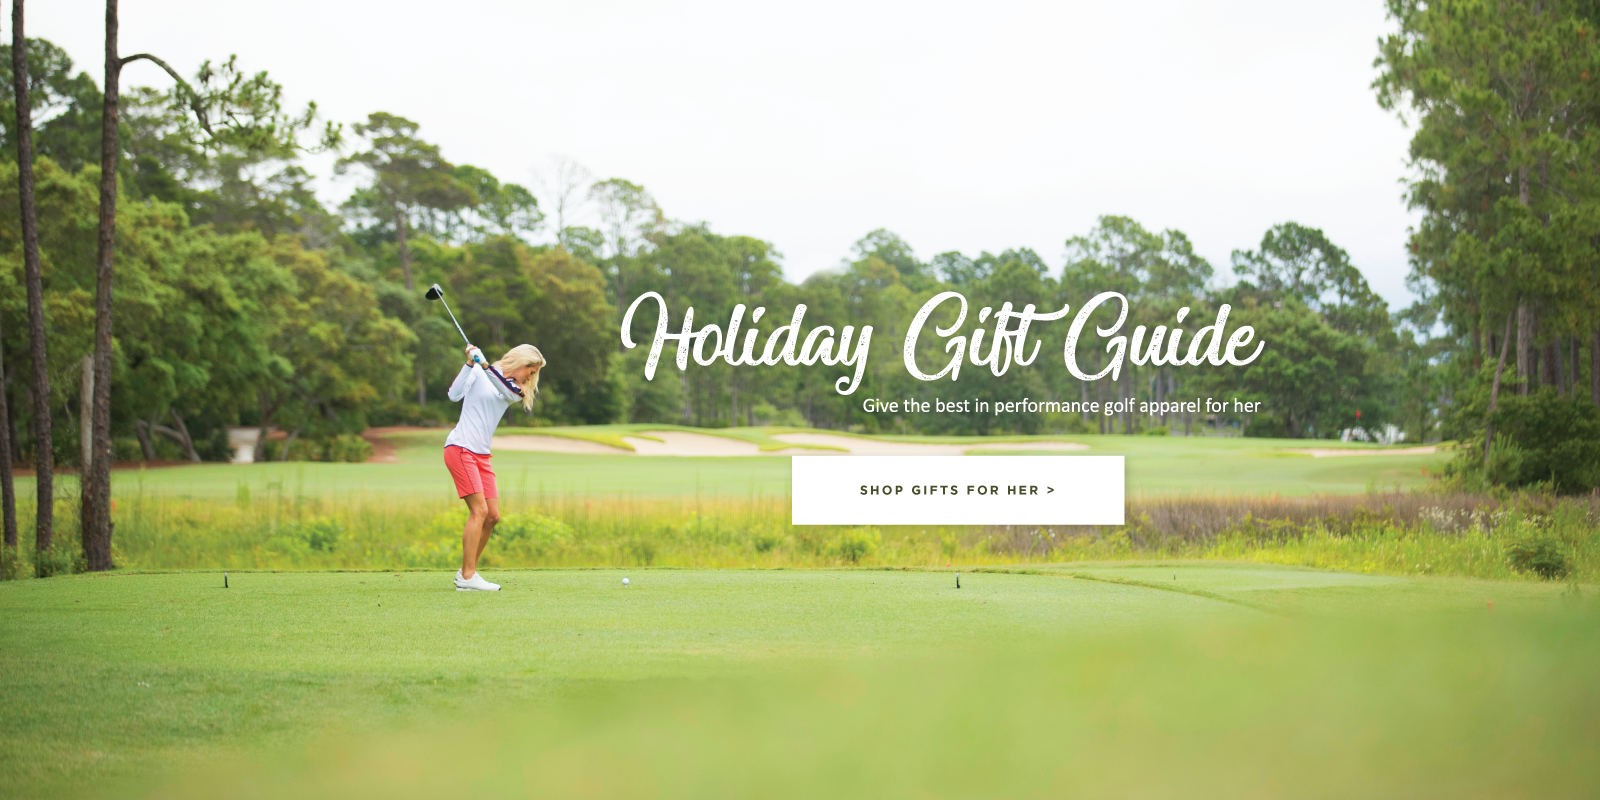 Holiday gift guide. Give the best in performance golf apparel for her. Shop gifts for her.